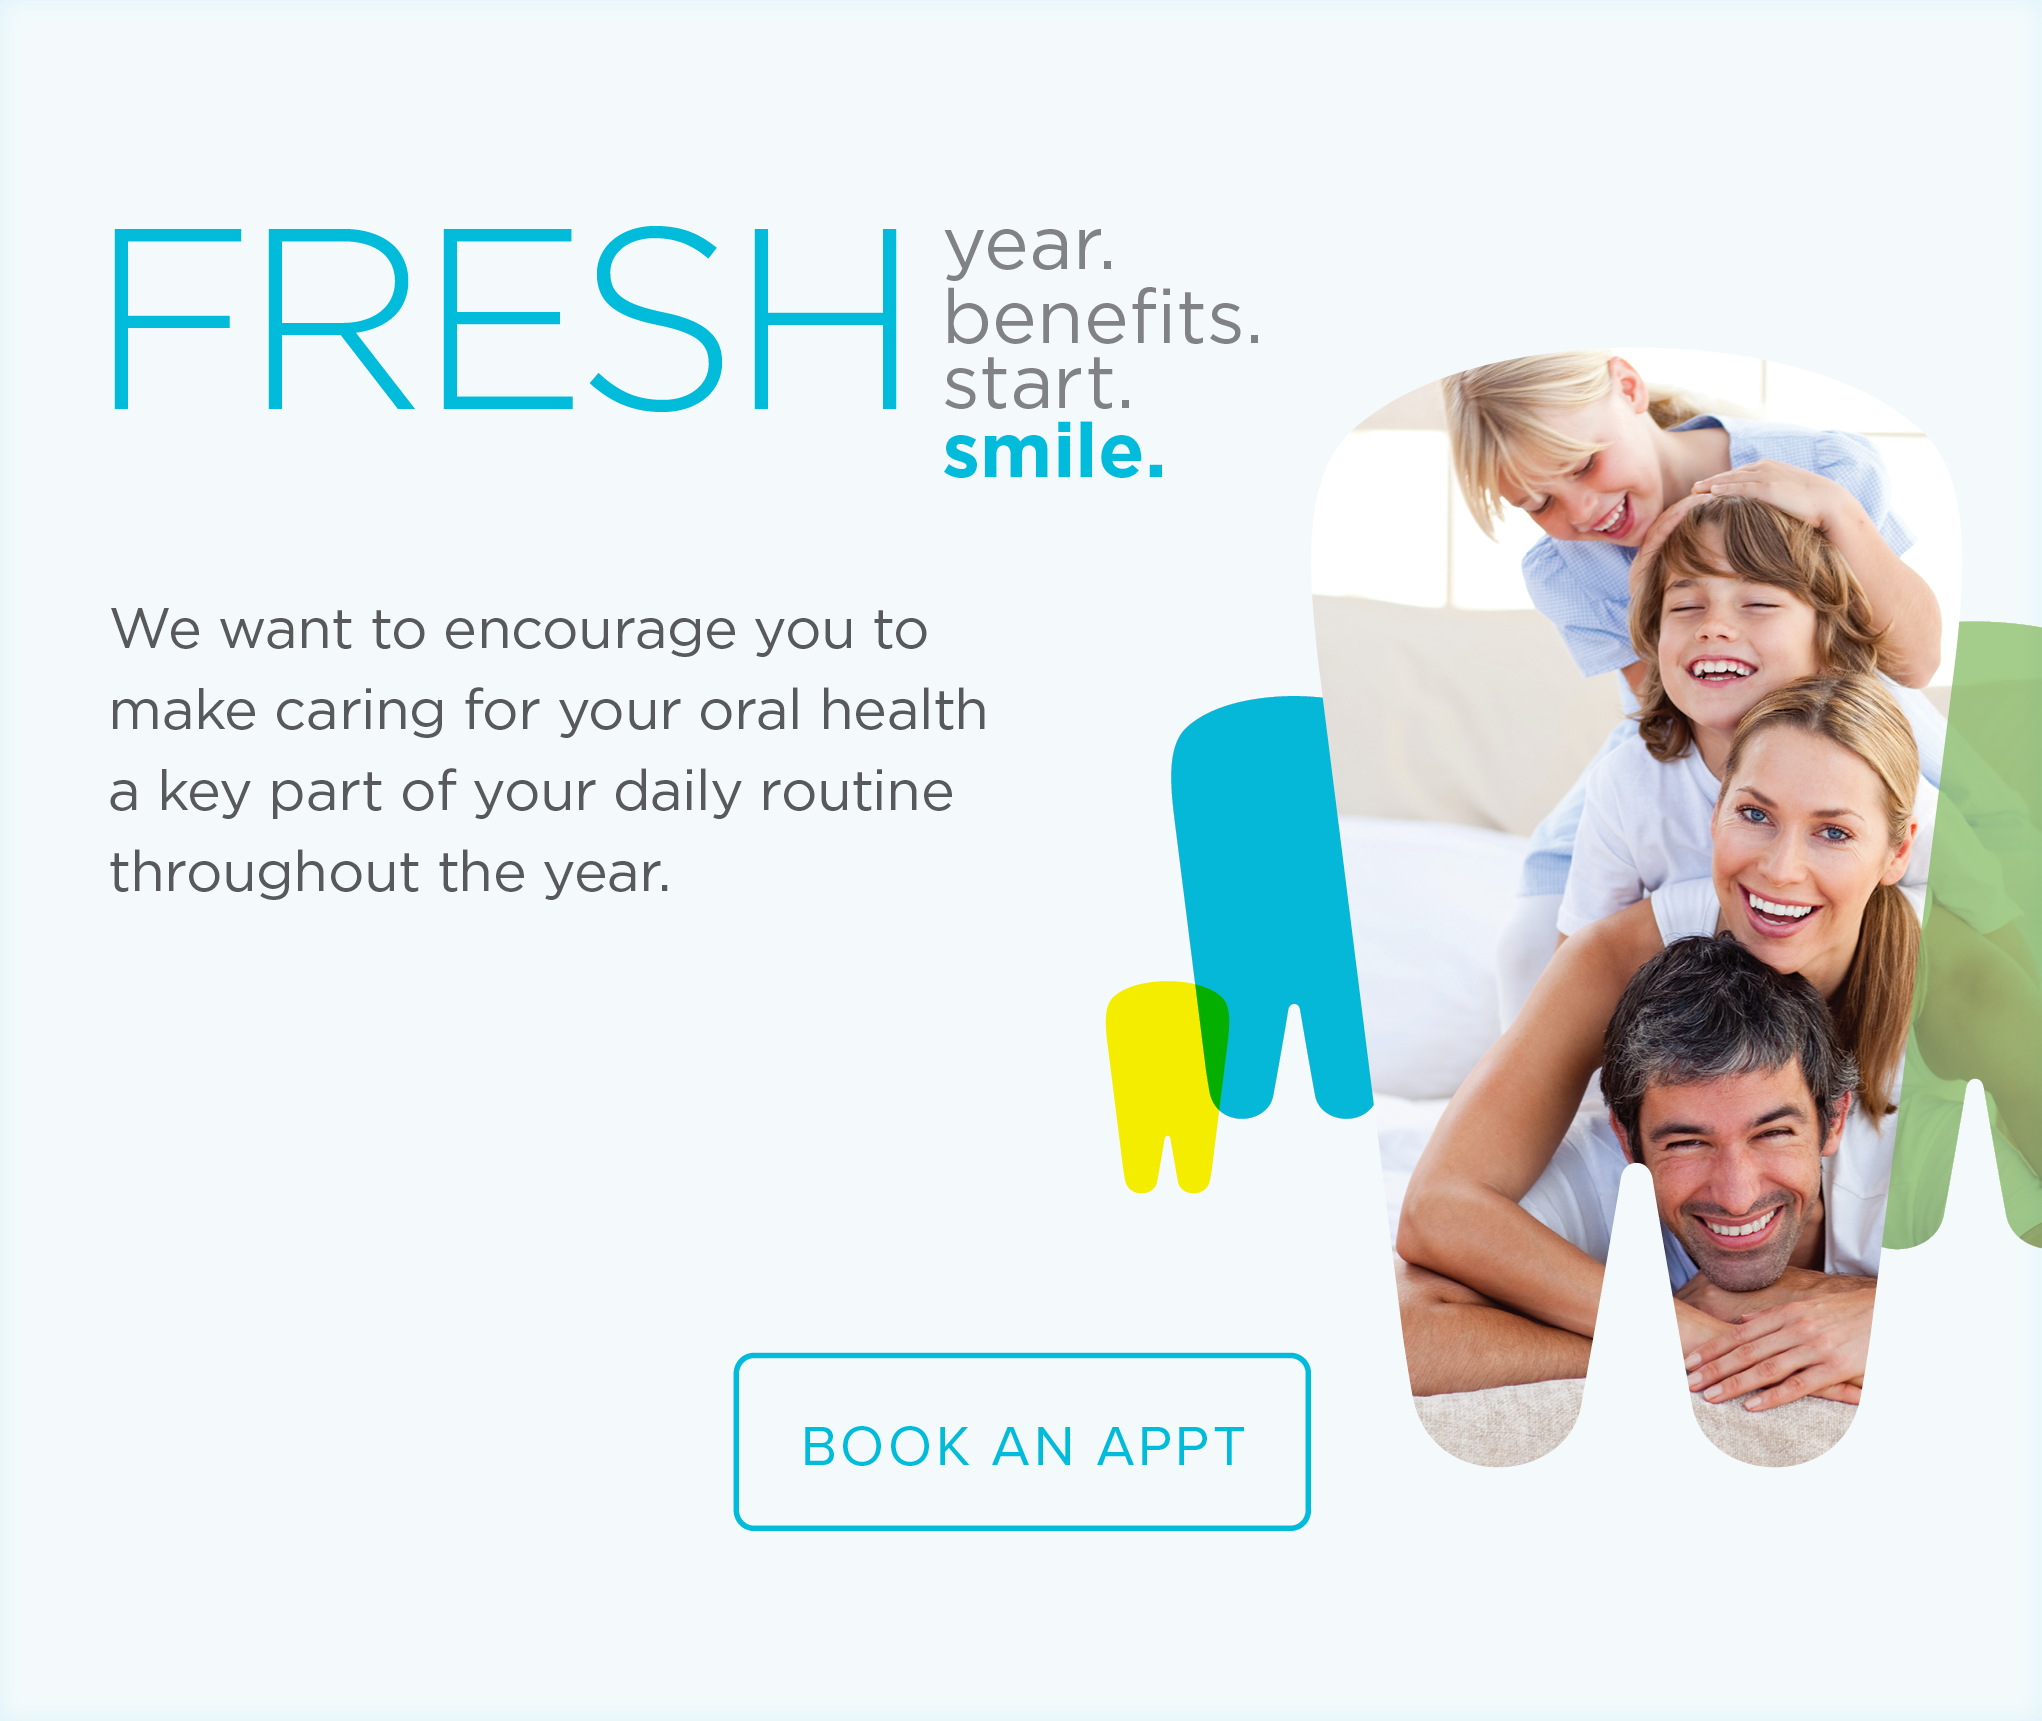 Rainsprings Dental Group and Orthodontics - Make the Most of Your Benefits